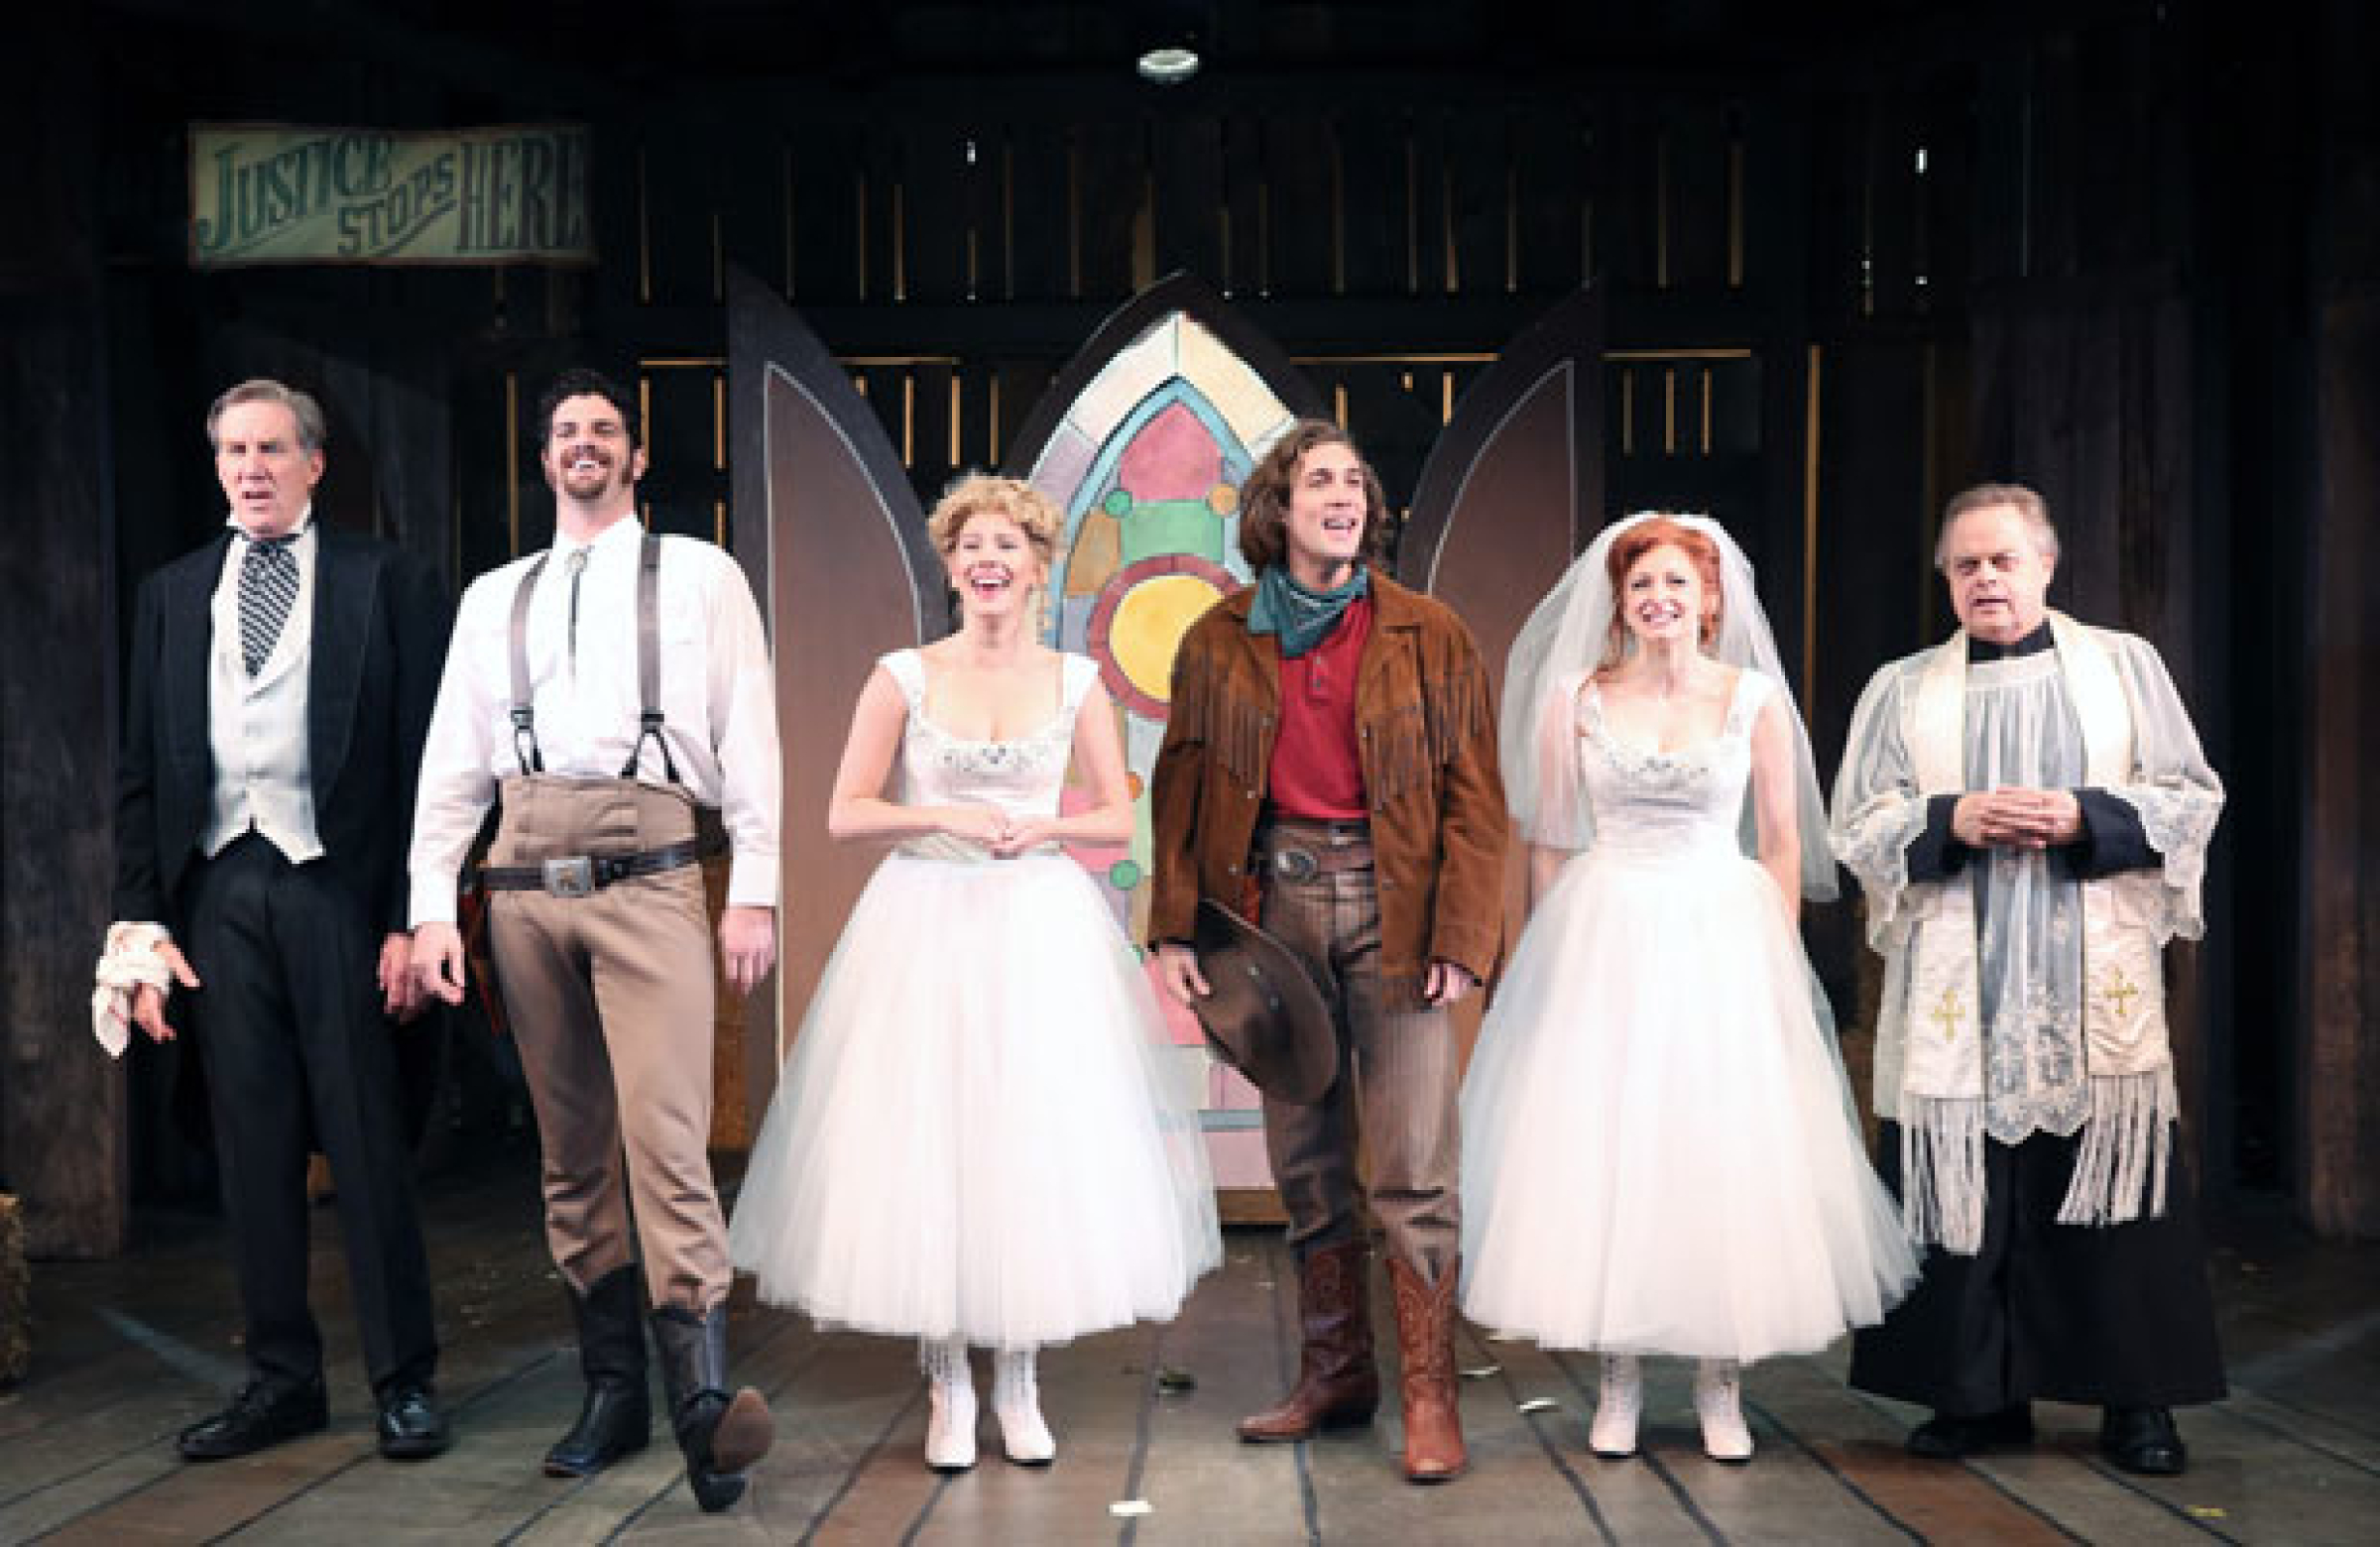 First Look At York Theatre Company S Desperate Measures Theatermania Desperate measures is a quest in the elder gods series and the sequel to desperate times. theatermania